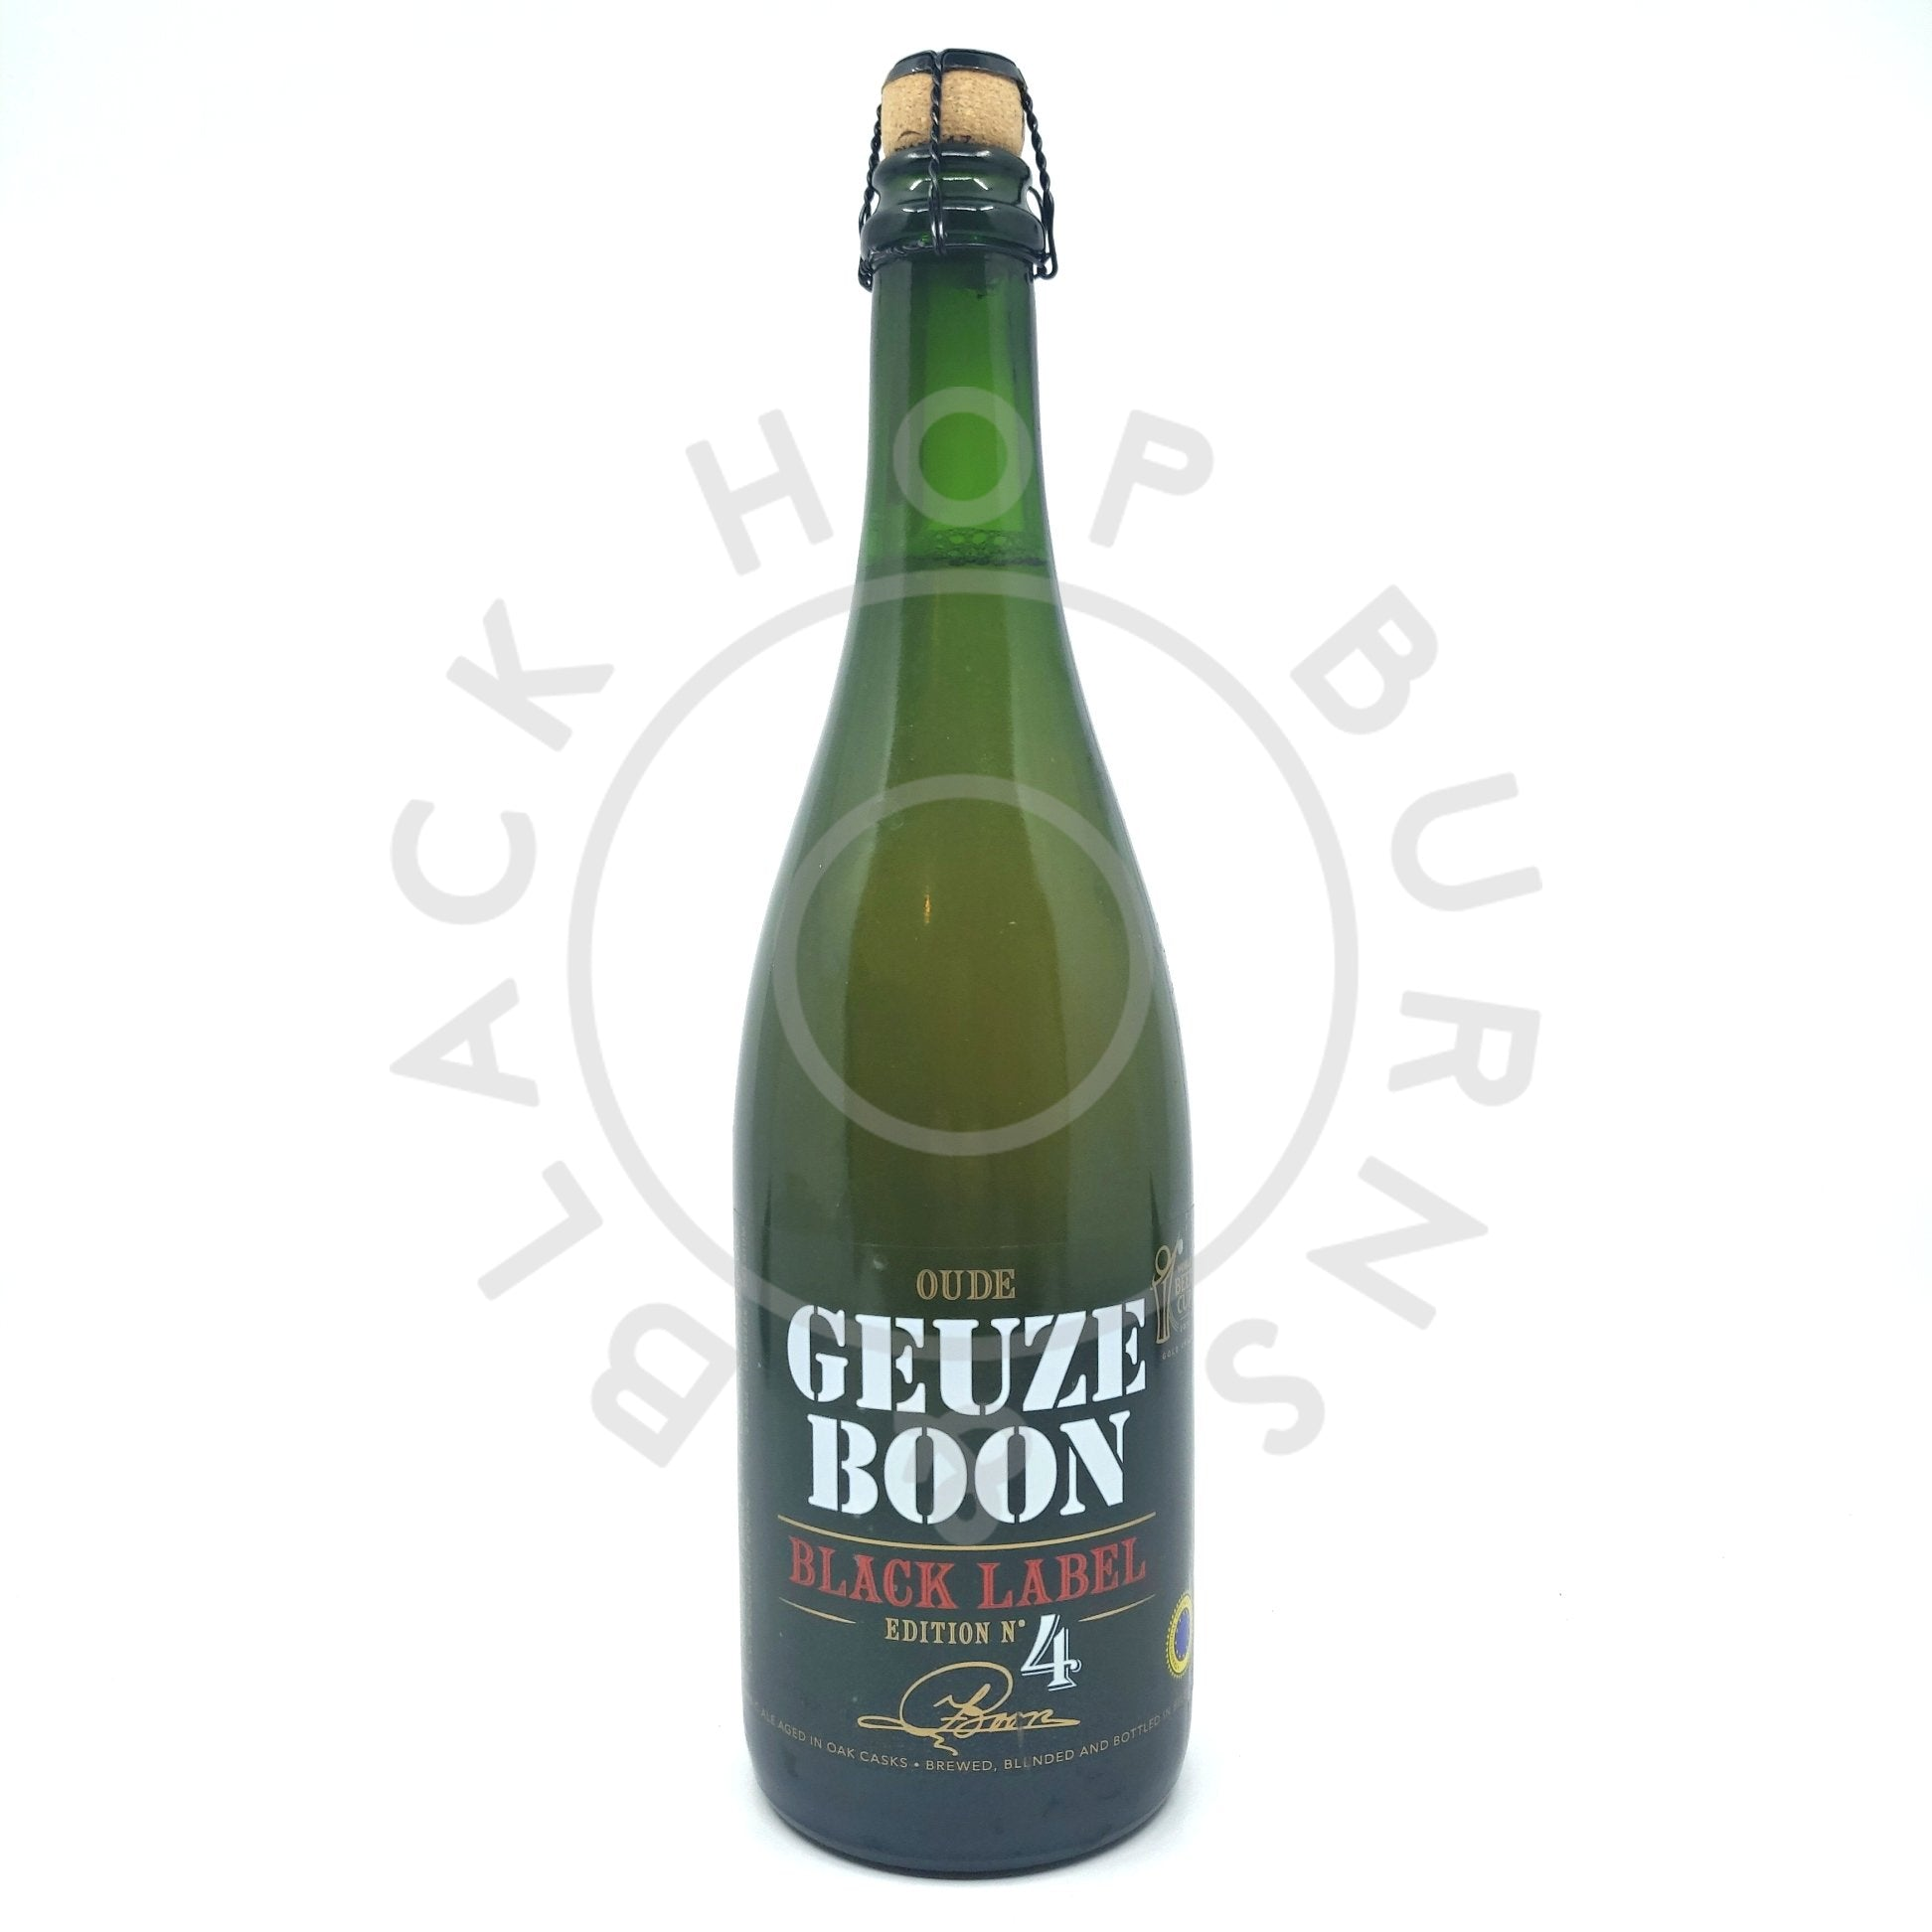 Boon Black Label Edition #4 7% (750ml)-Hop Burns & Black